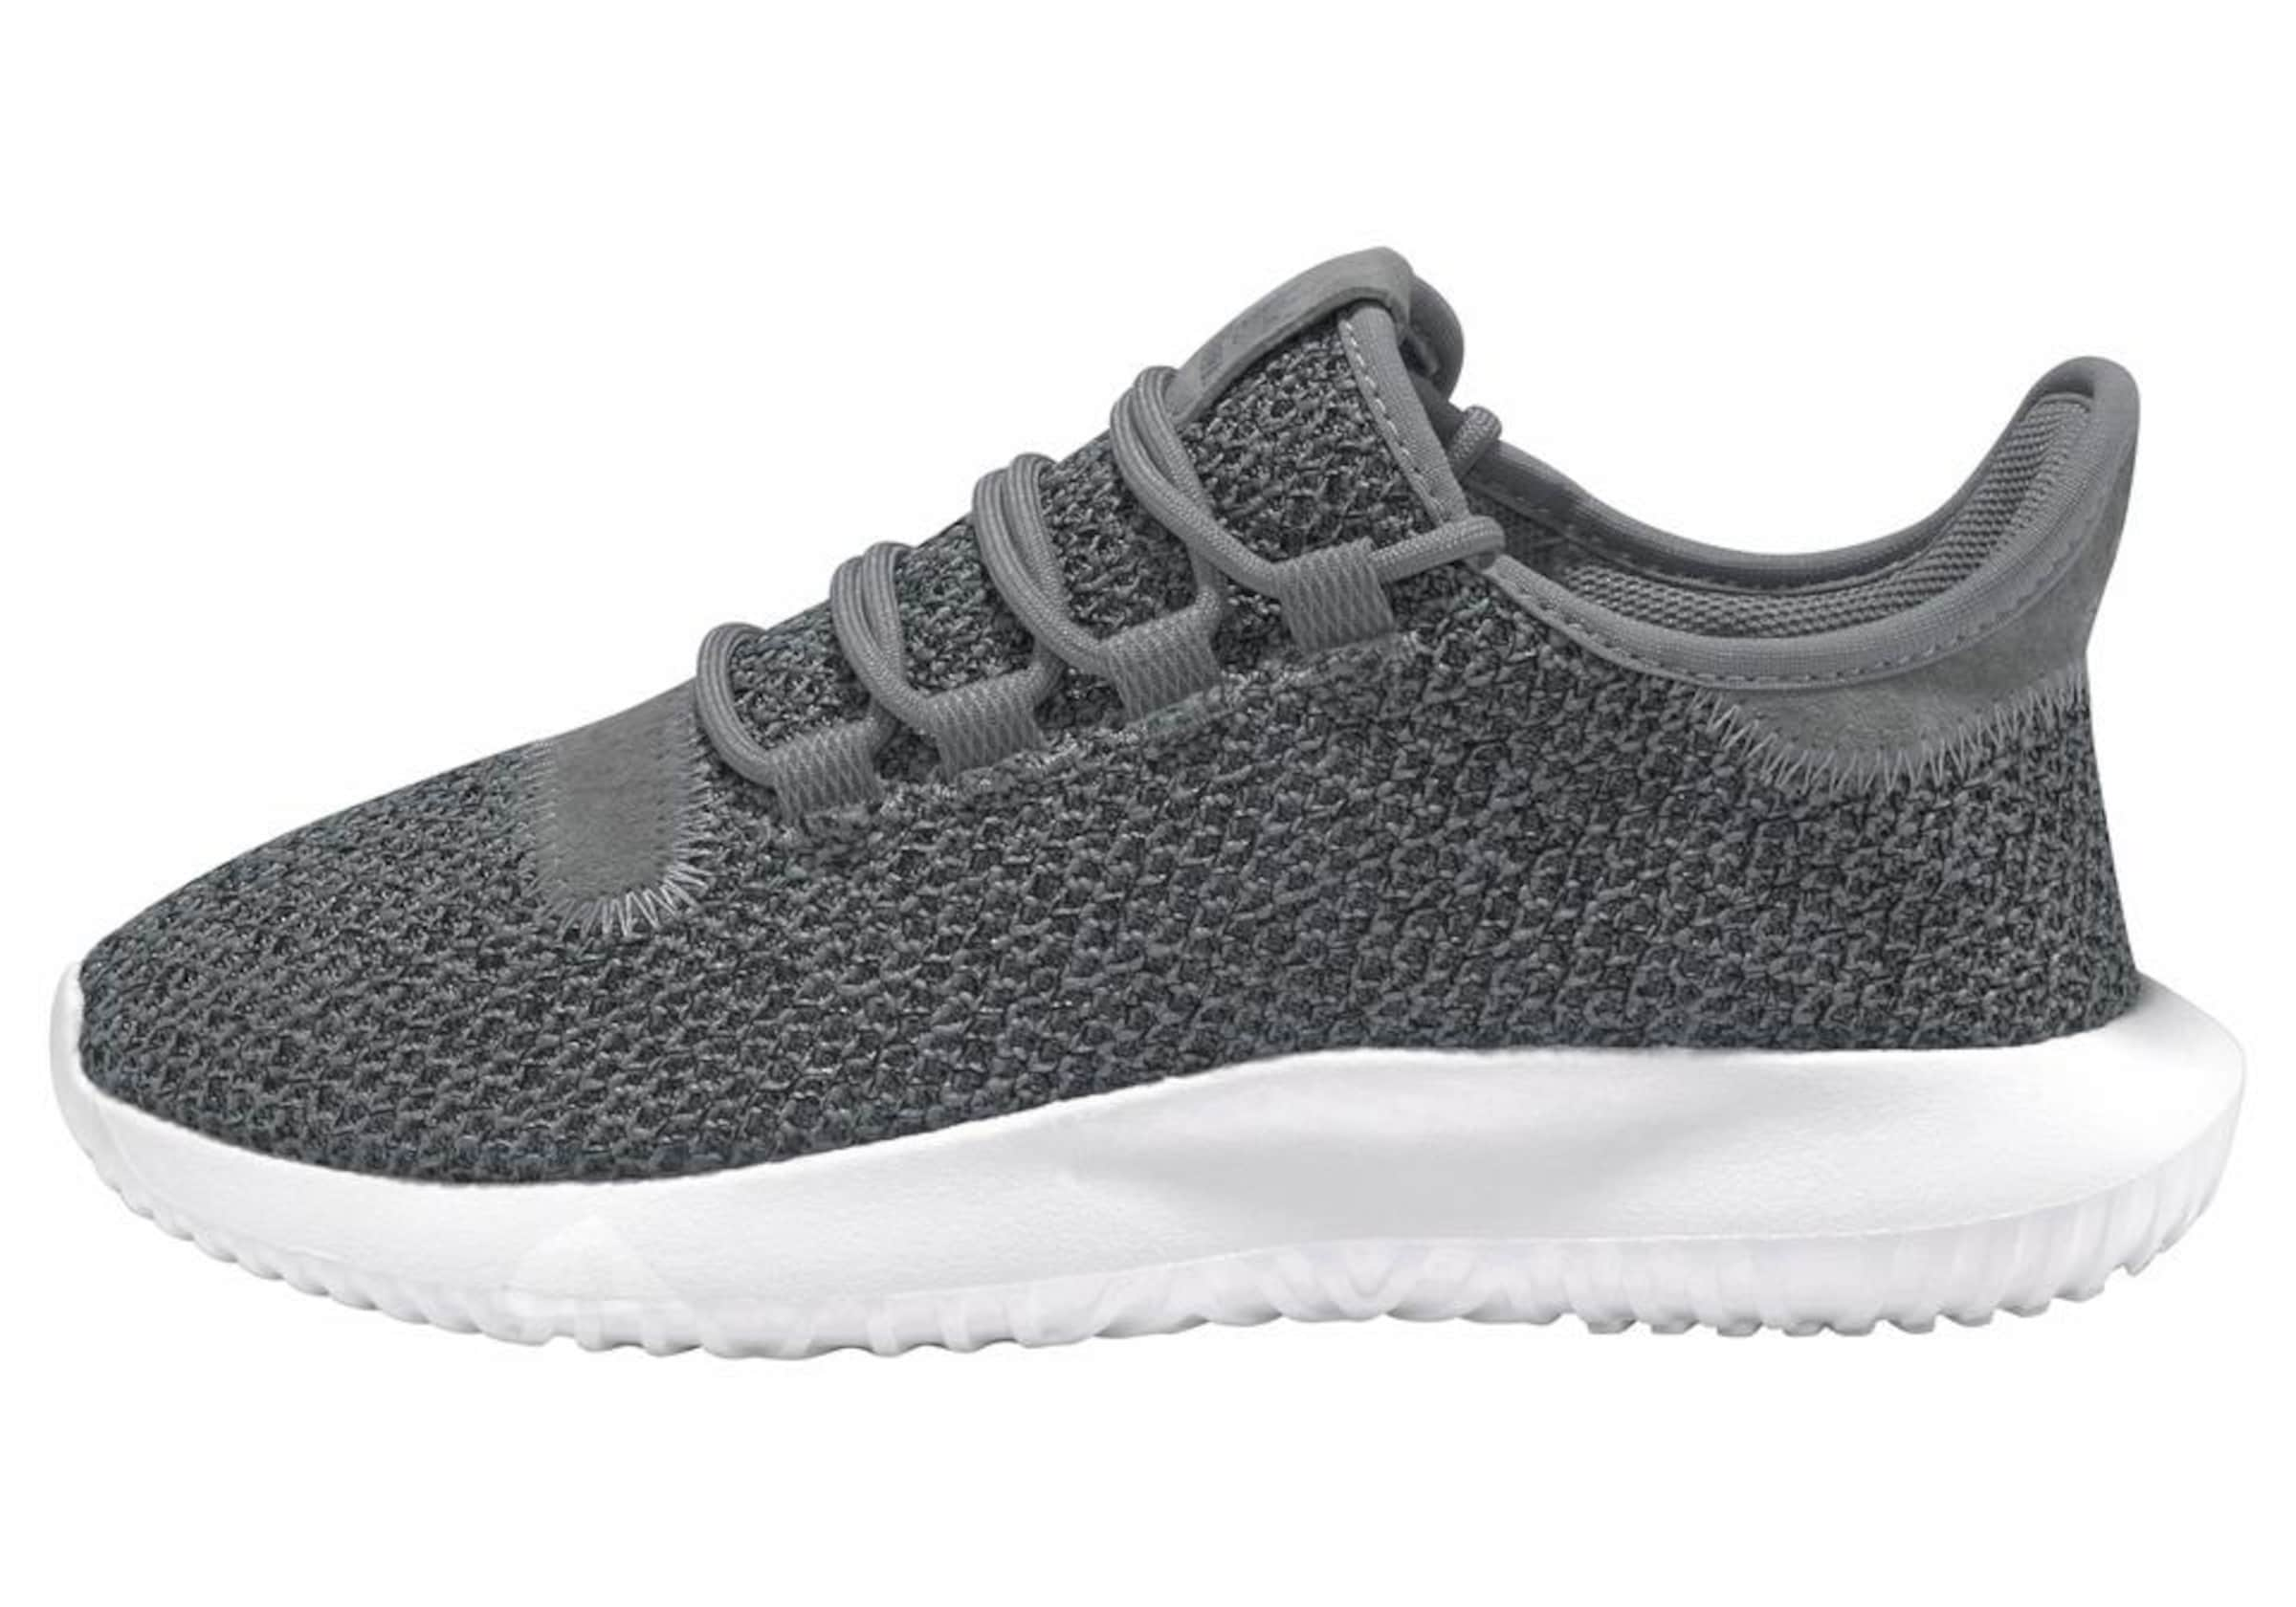 Basaltgrau Originals Tubular Shadow Adidas Sneaker In shQrdtC